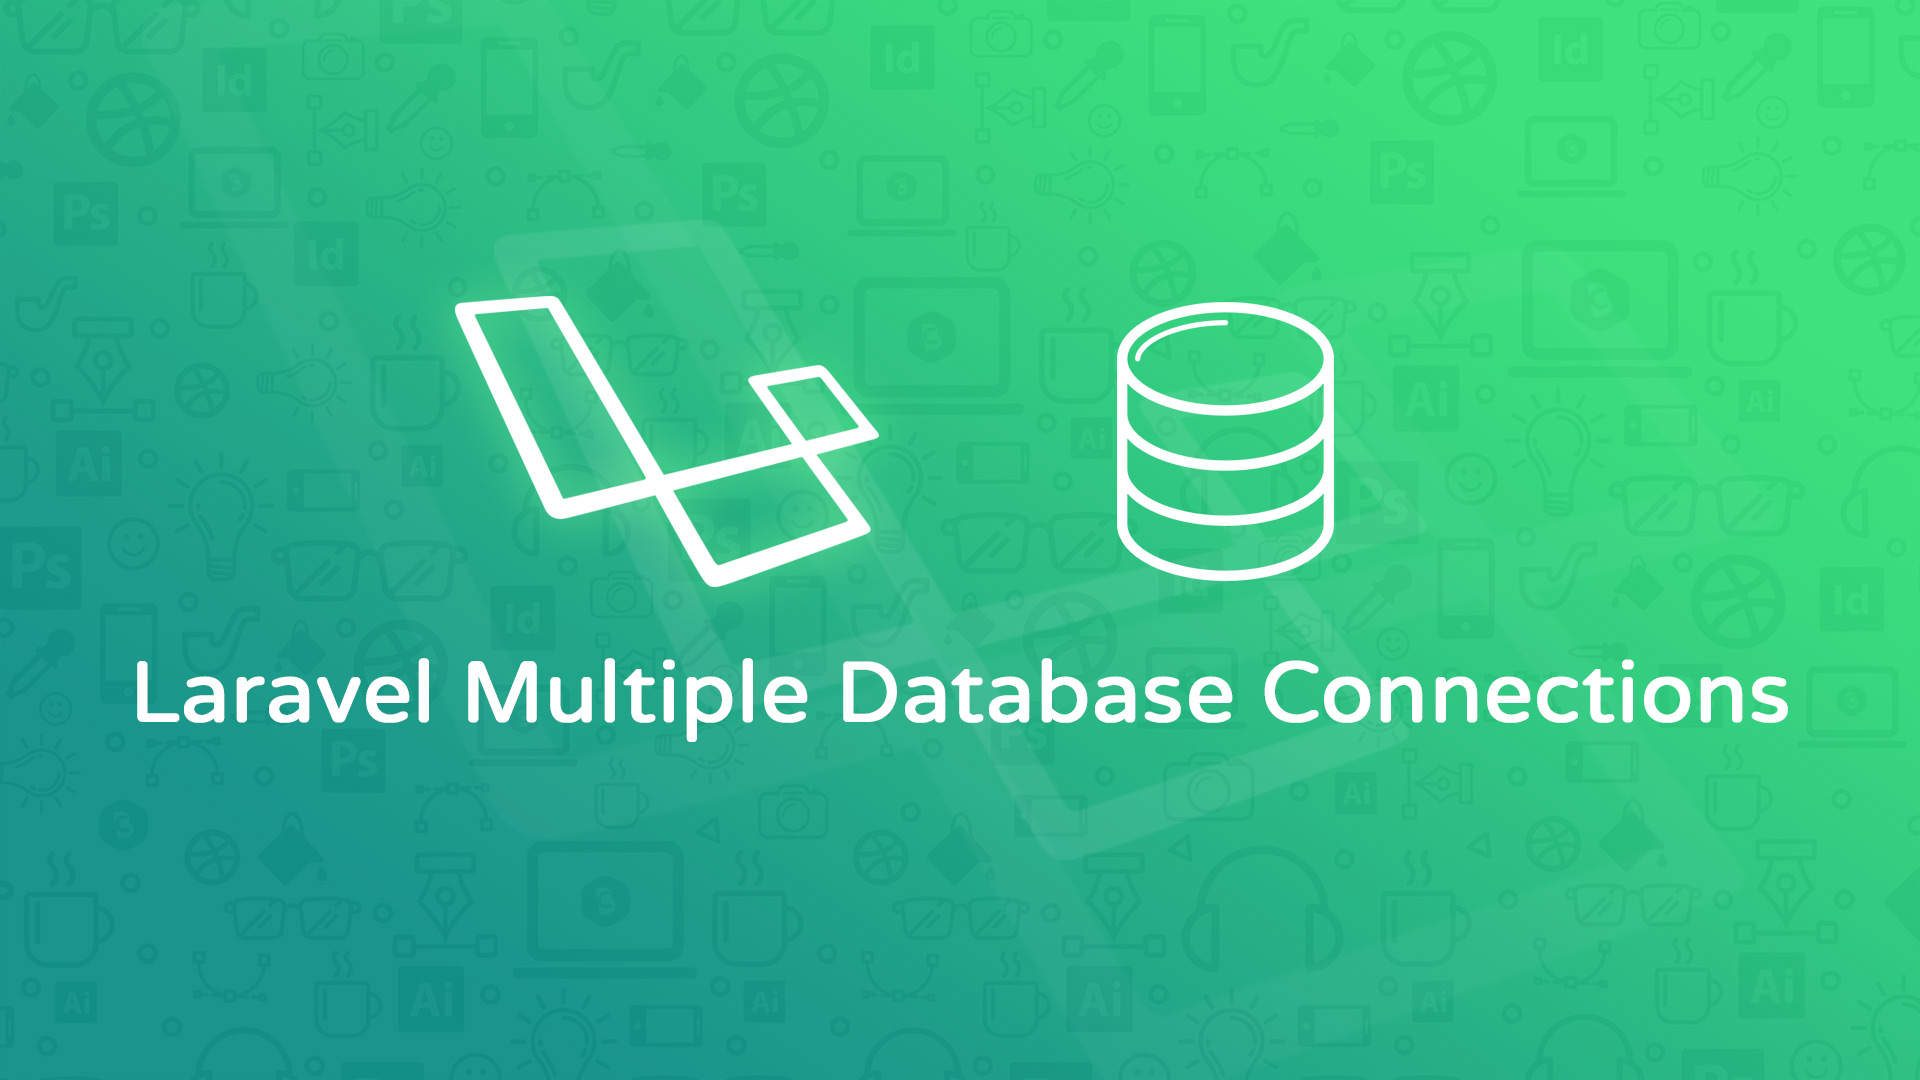 How to connect multiple database in Laravel application